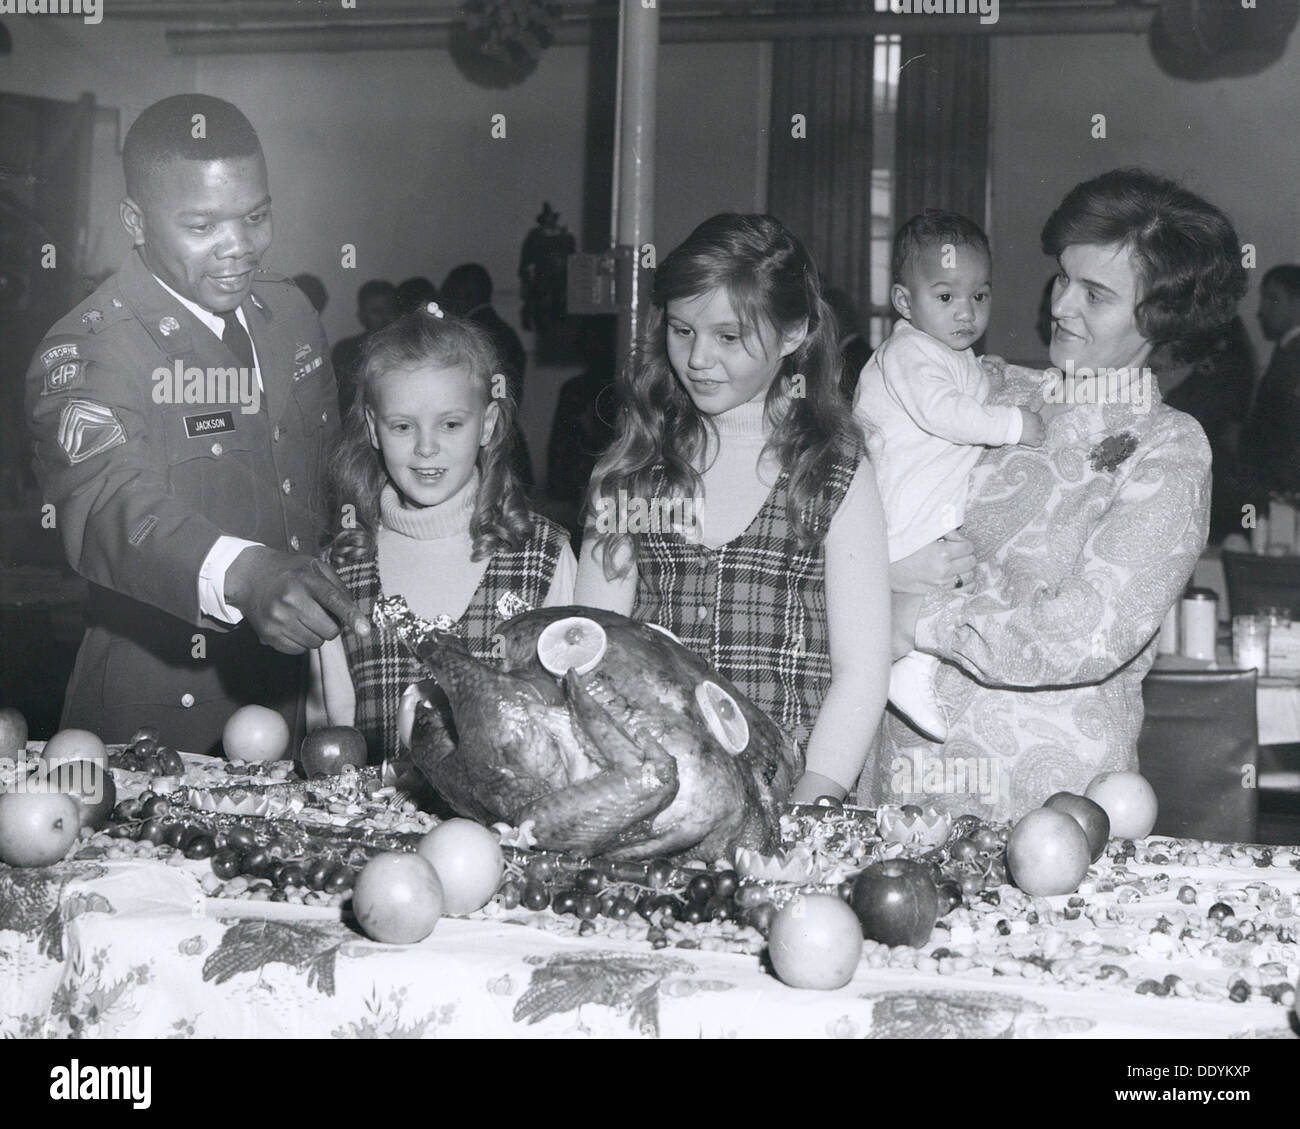 Thanksgiving Day celebrations at the consolidated mess, Fort Sheridan, Illinois, USA, 1969. Artist: SP5 Bond - Stock Image